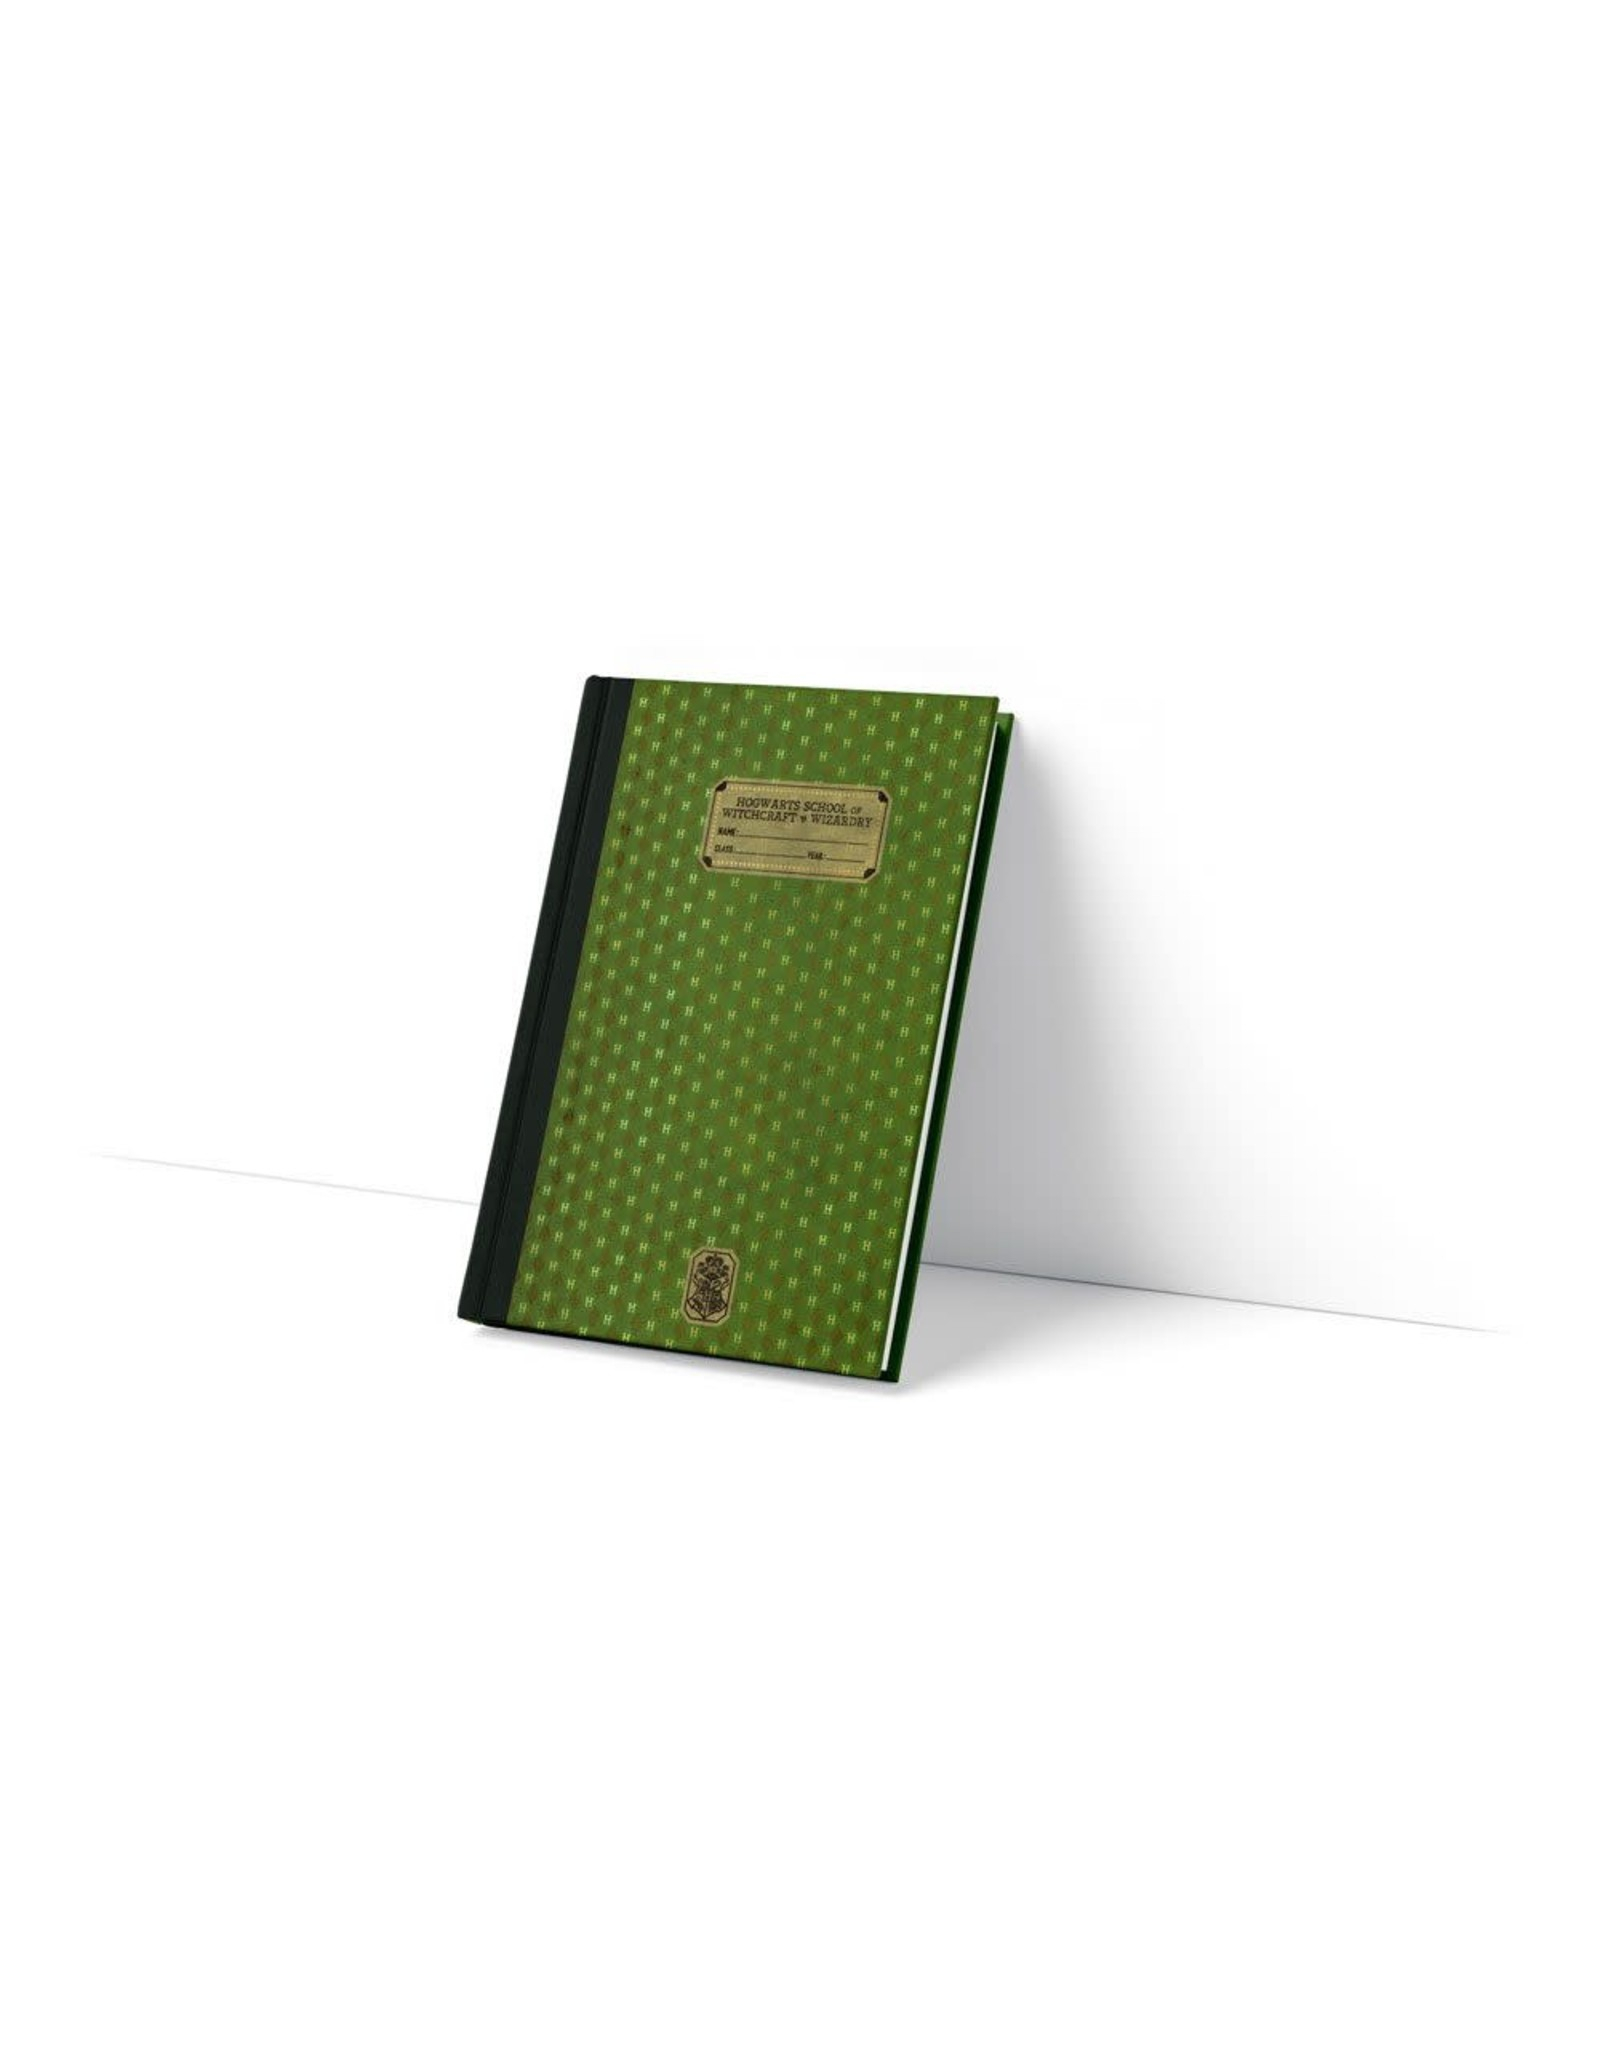 SD Toys HARRY POTTER Premium Notebook  - 1910 Slytherin Exercise Book